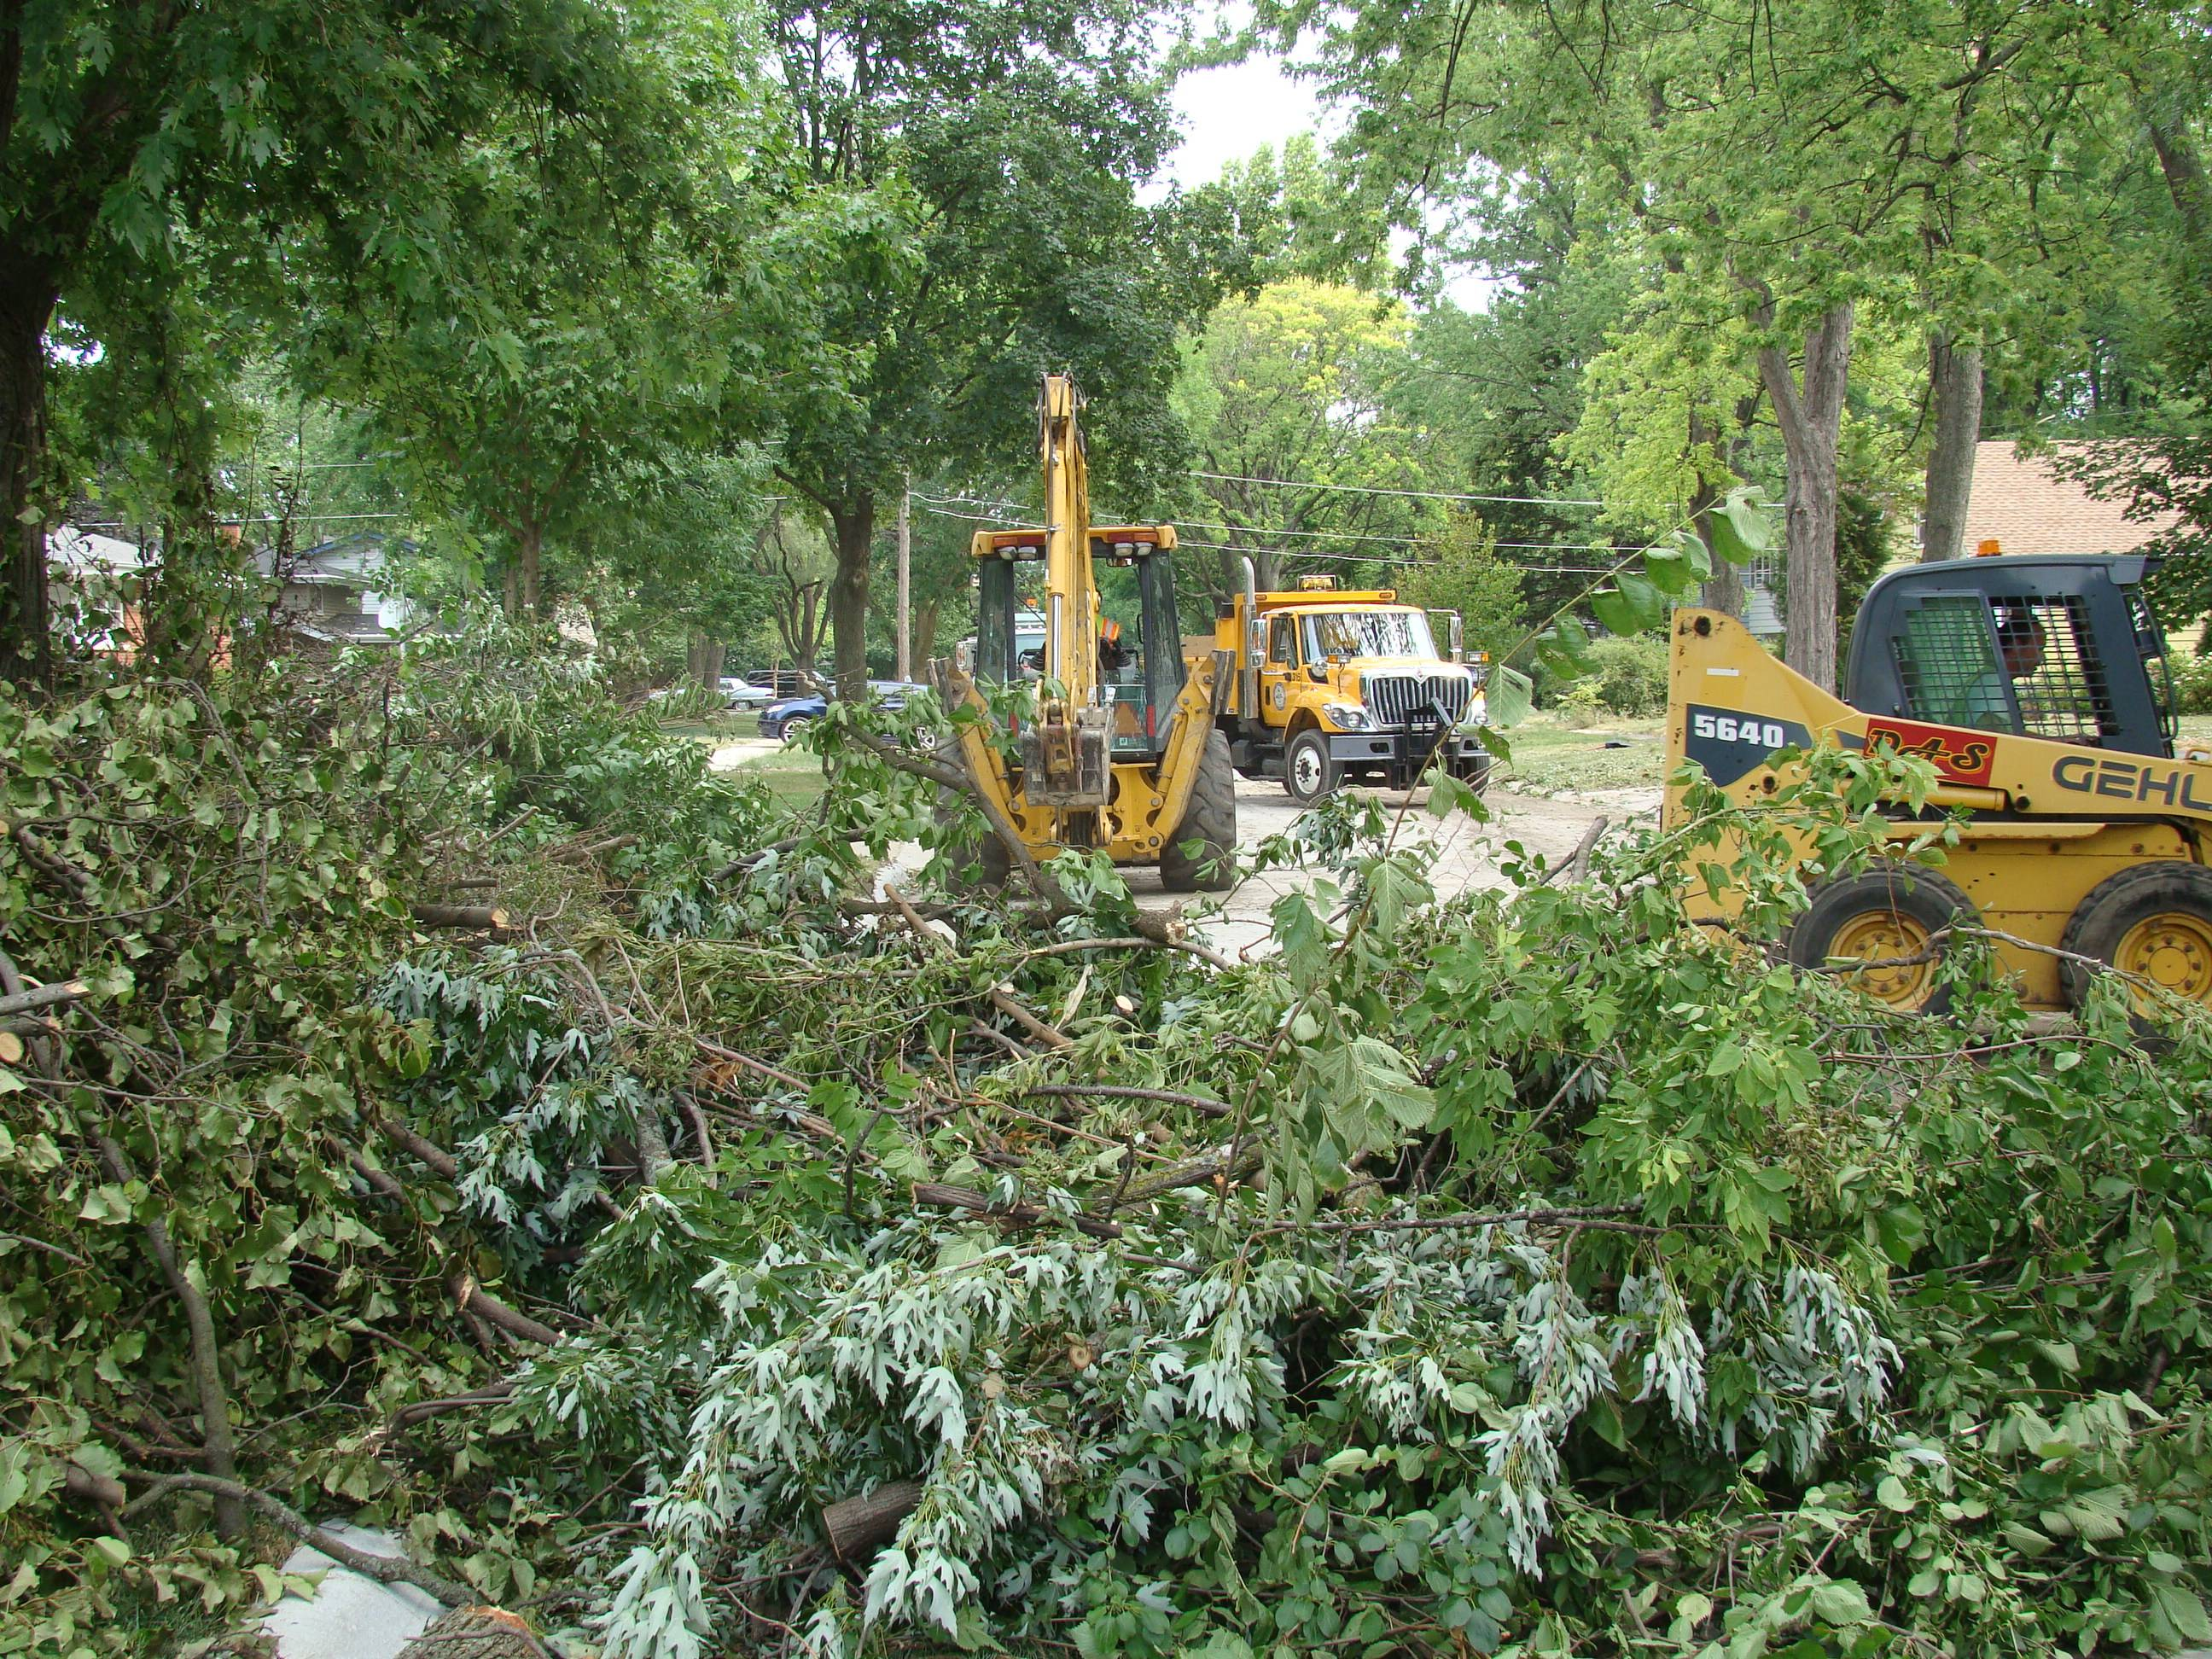 Public Works crews from Rolling Meadows assist Lombard Public Works crews today to clear branches and other debris left by the storm on Fairfield Avenue near Madison Meadows Park in Lombard.